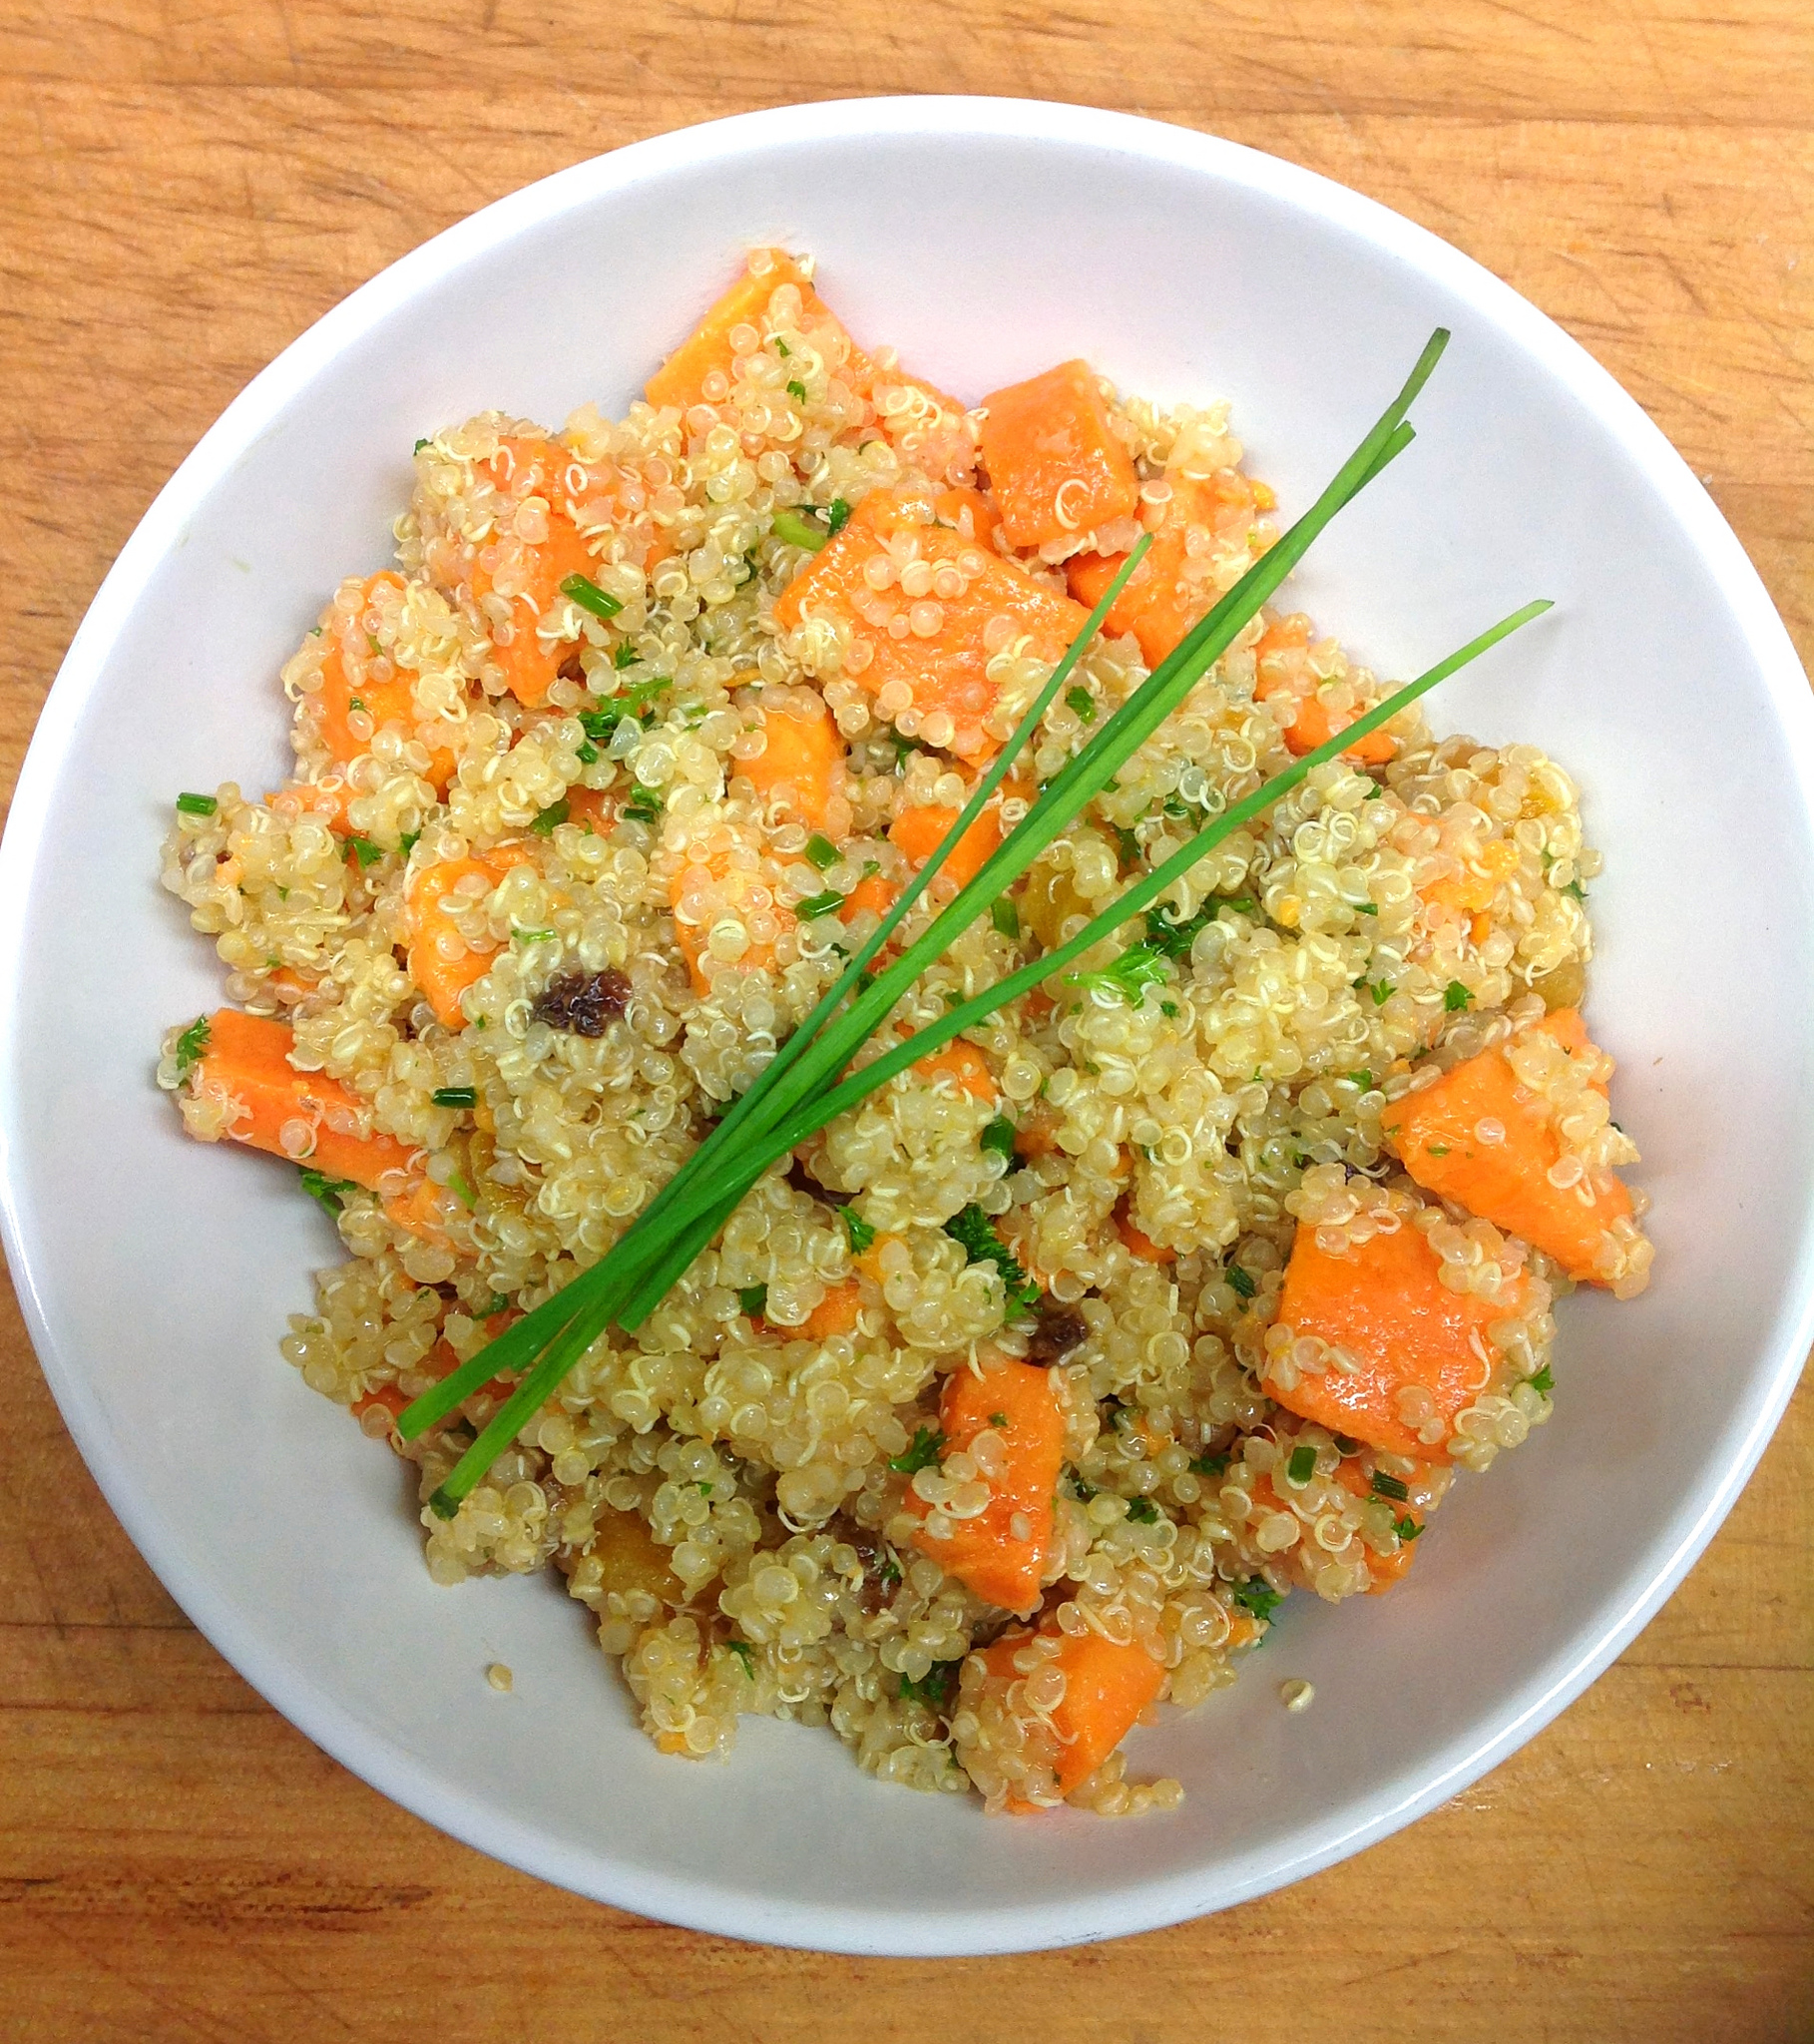 Quinoa with yams, dried apricots, dates and chives in a Meyers lemon vinagrette